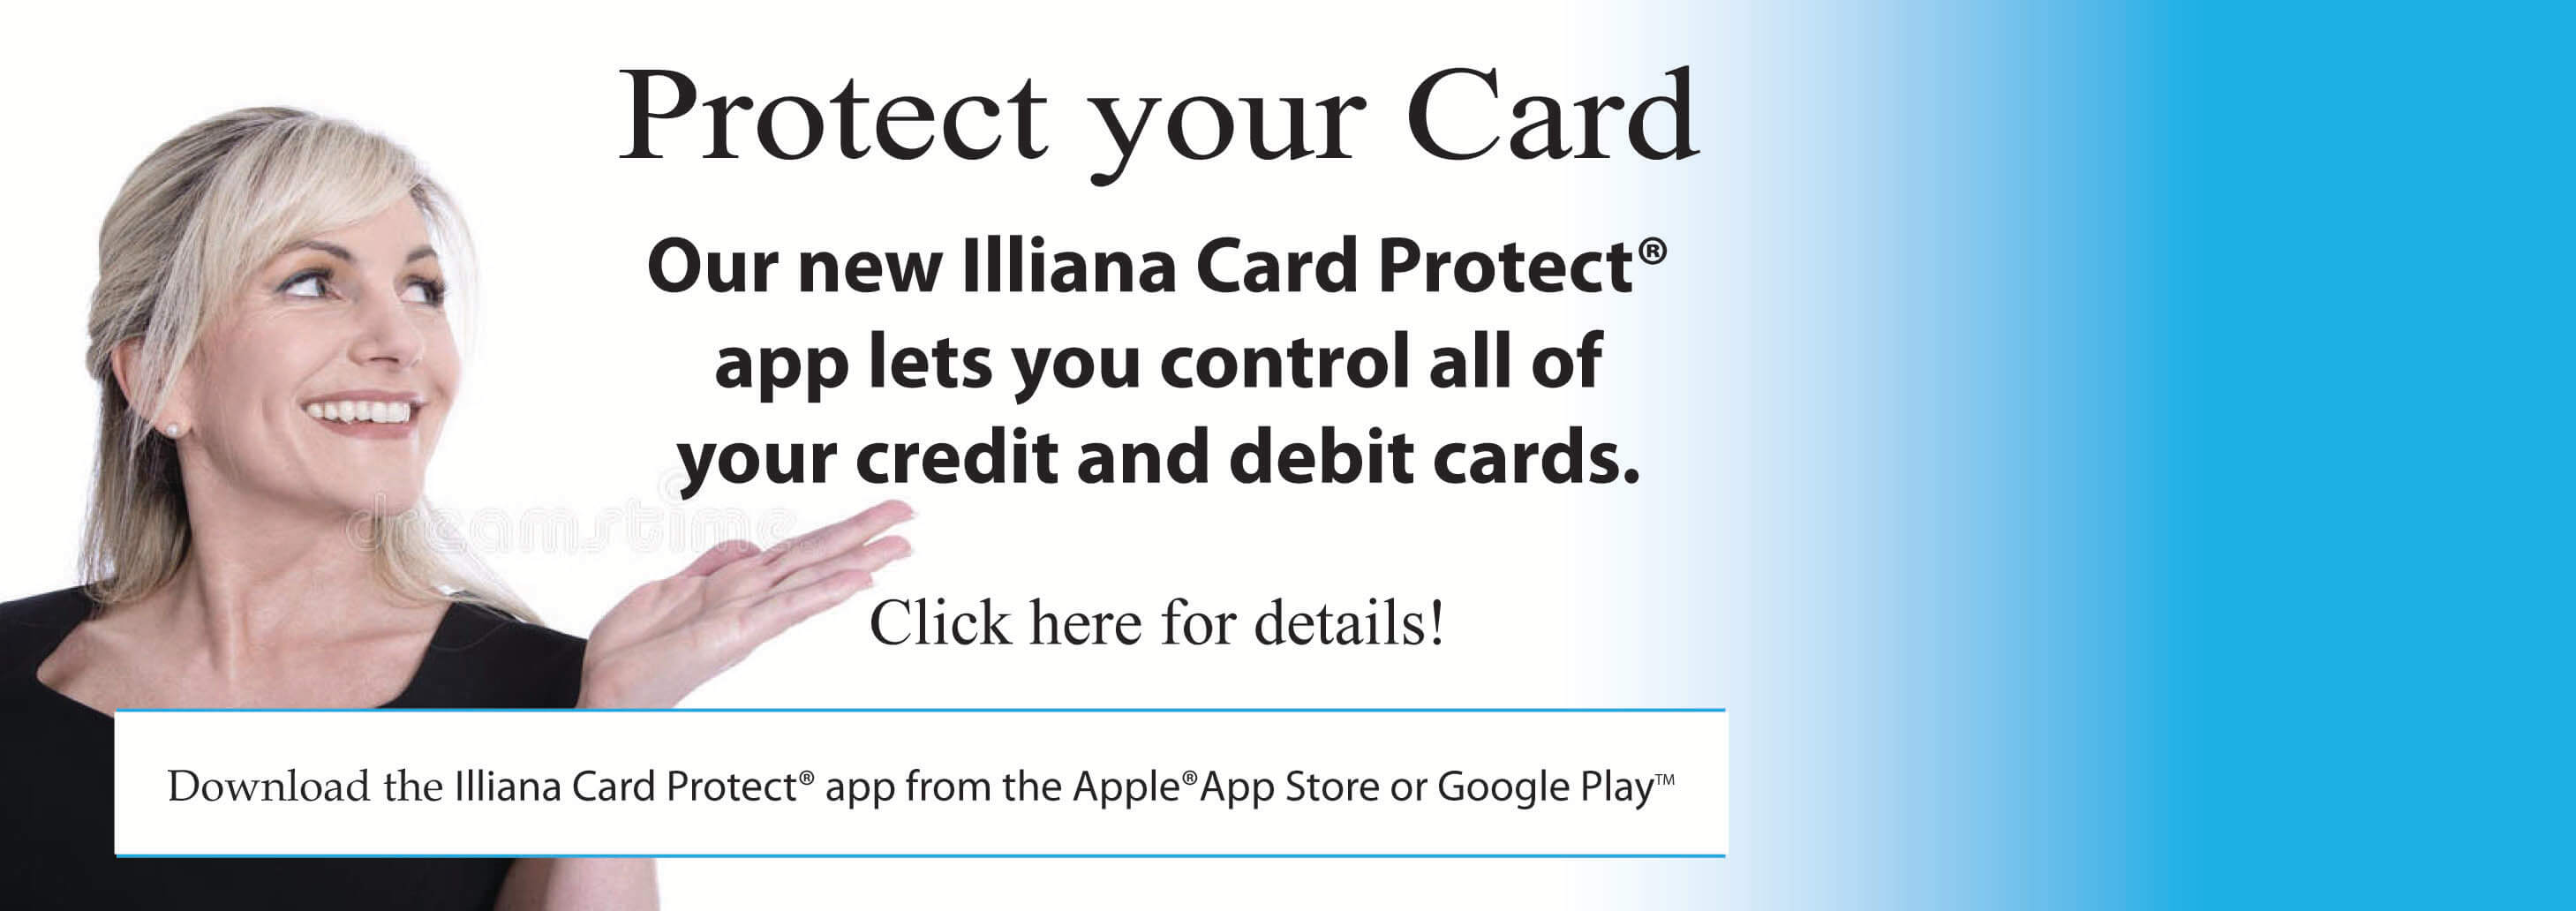 Protect your card. Our new Illiana Card Protect app lets you control all of your credit and debit cards. Click for details.